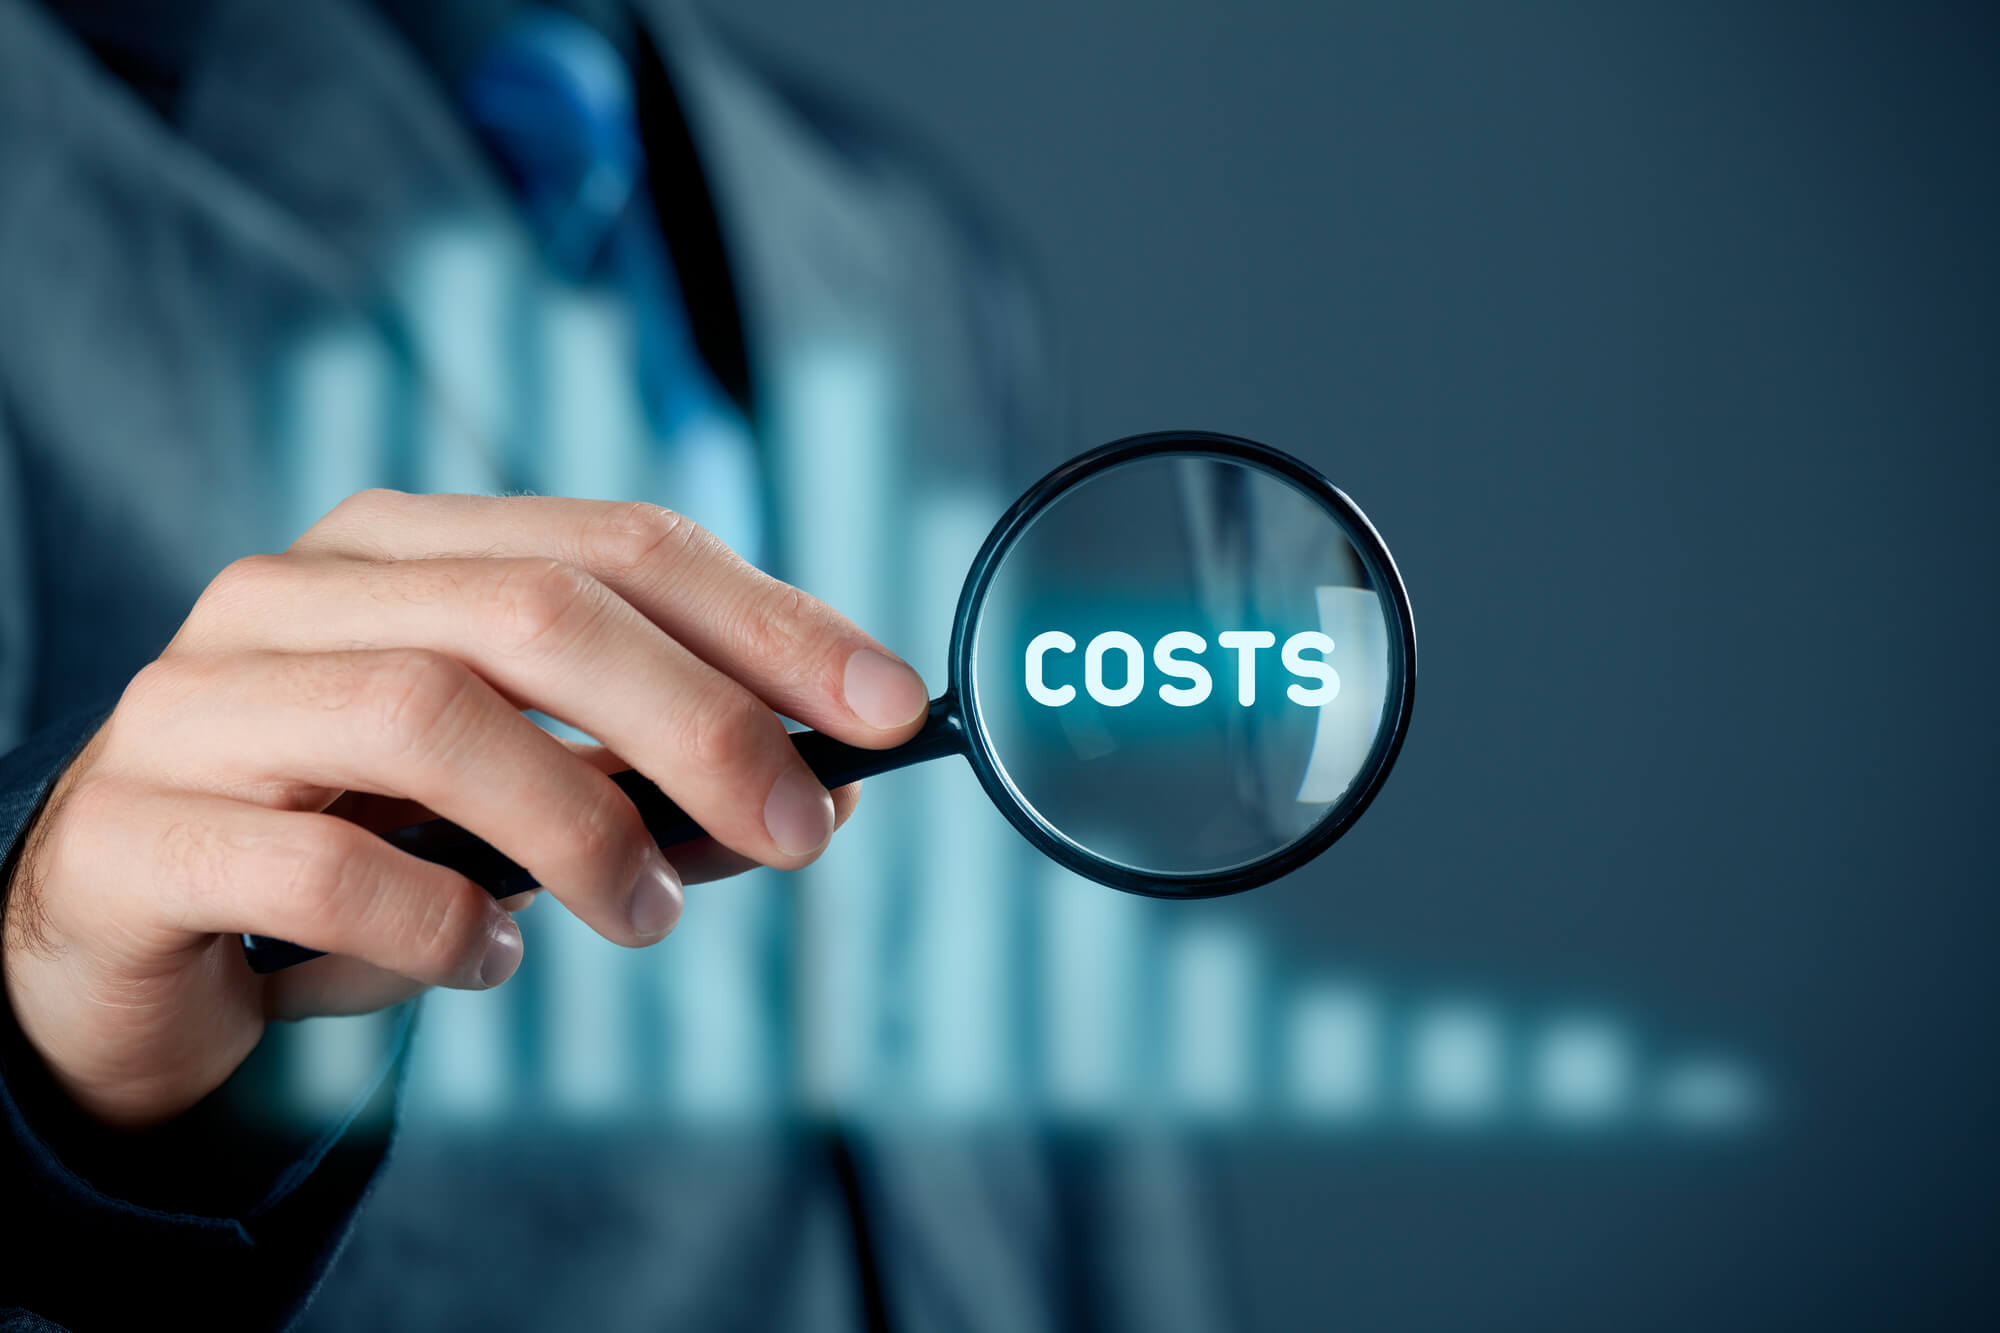 Business inflation costs analysis